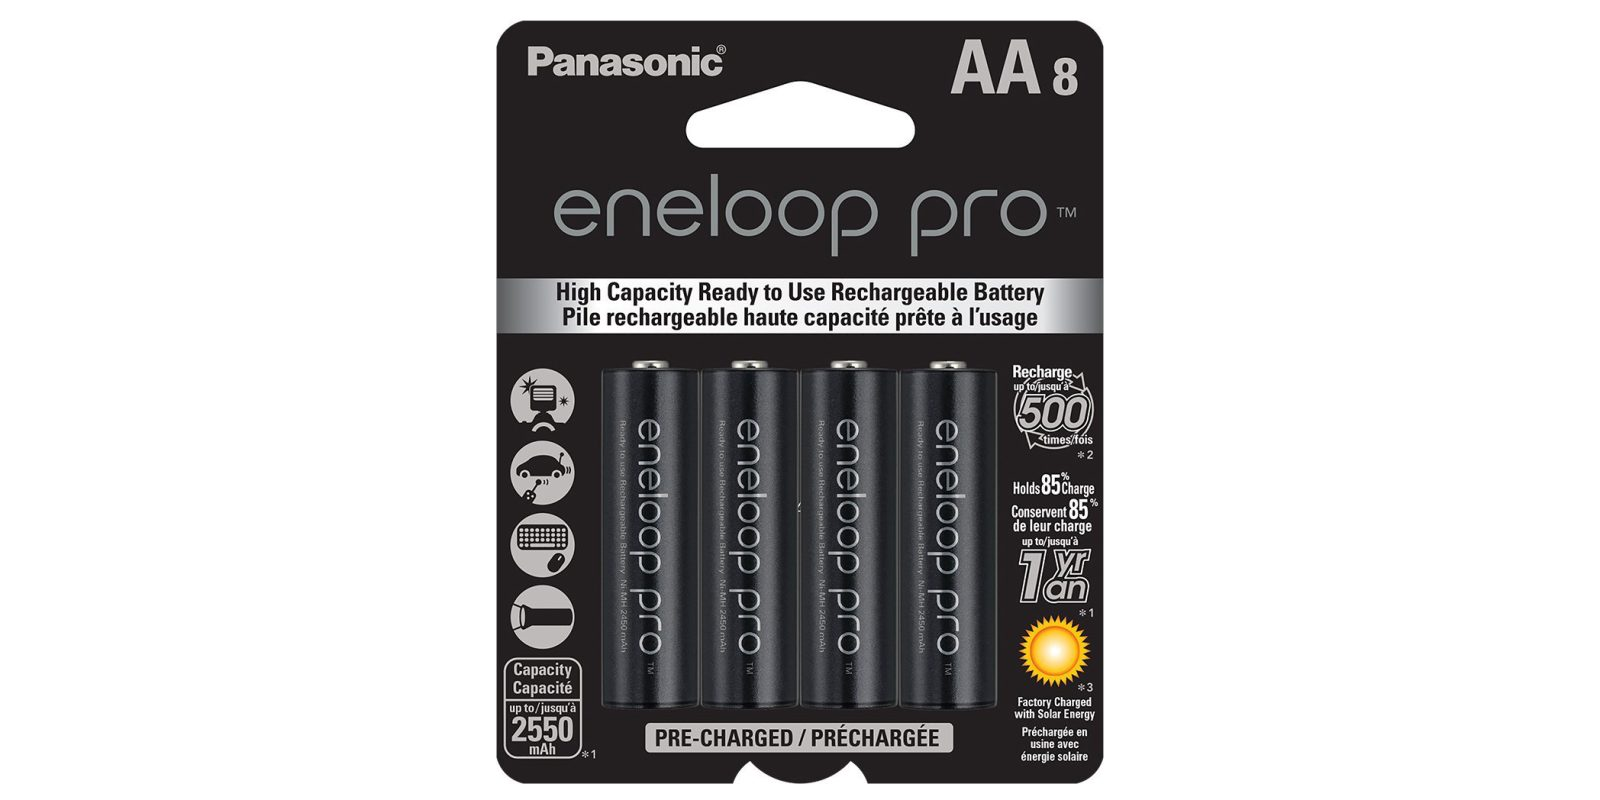 Green Deals Panasonic Eneloop Pro AA Rechargeable Batteries 21